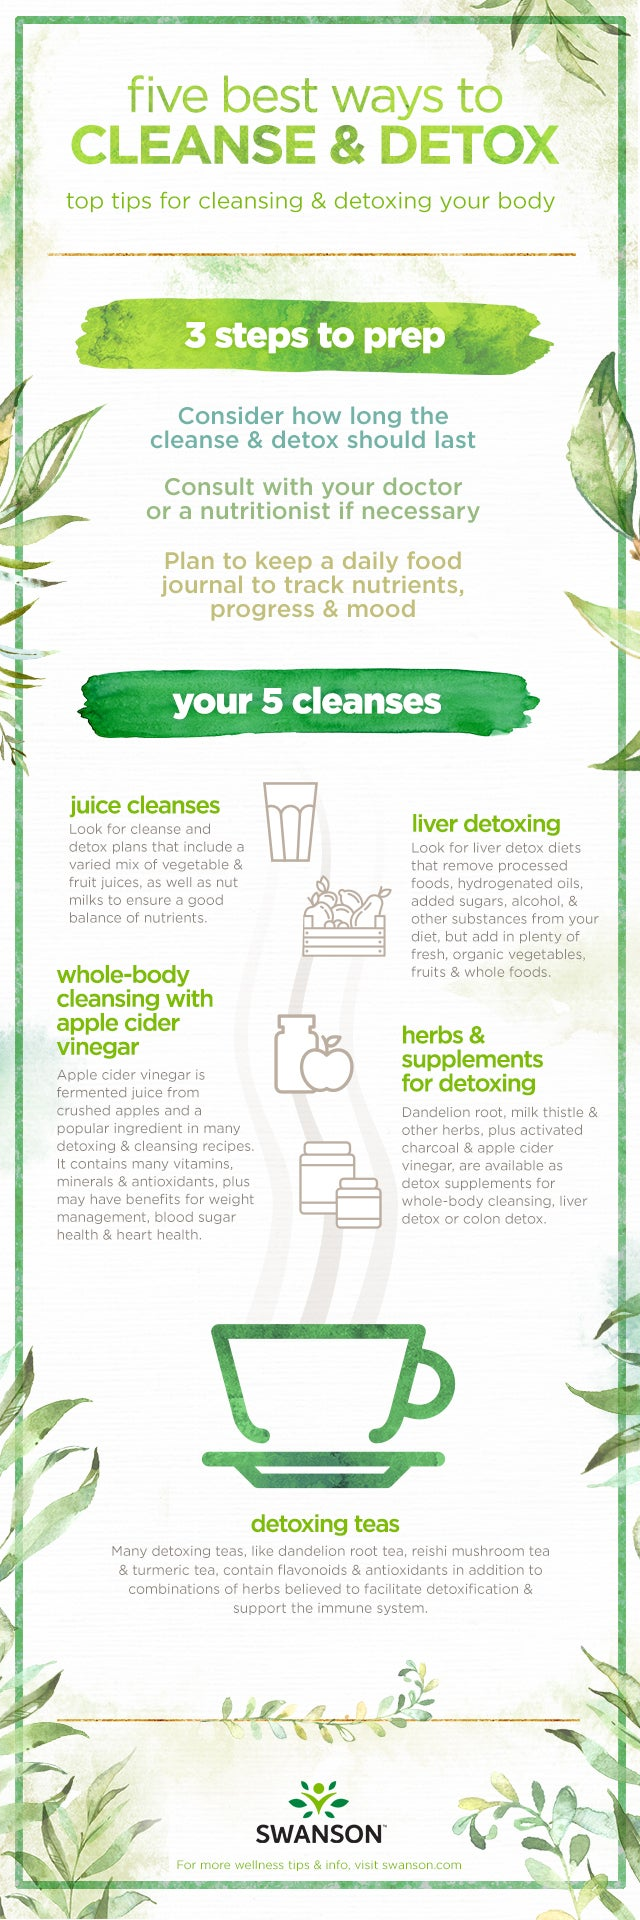 Best Ways to Cleanse and Detox, 5 ways plus tips on how to detox